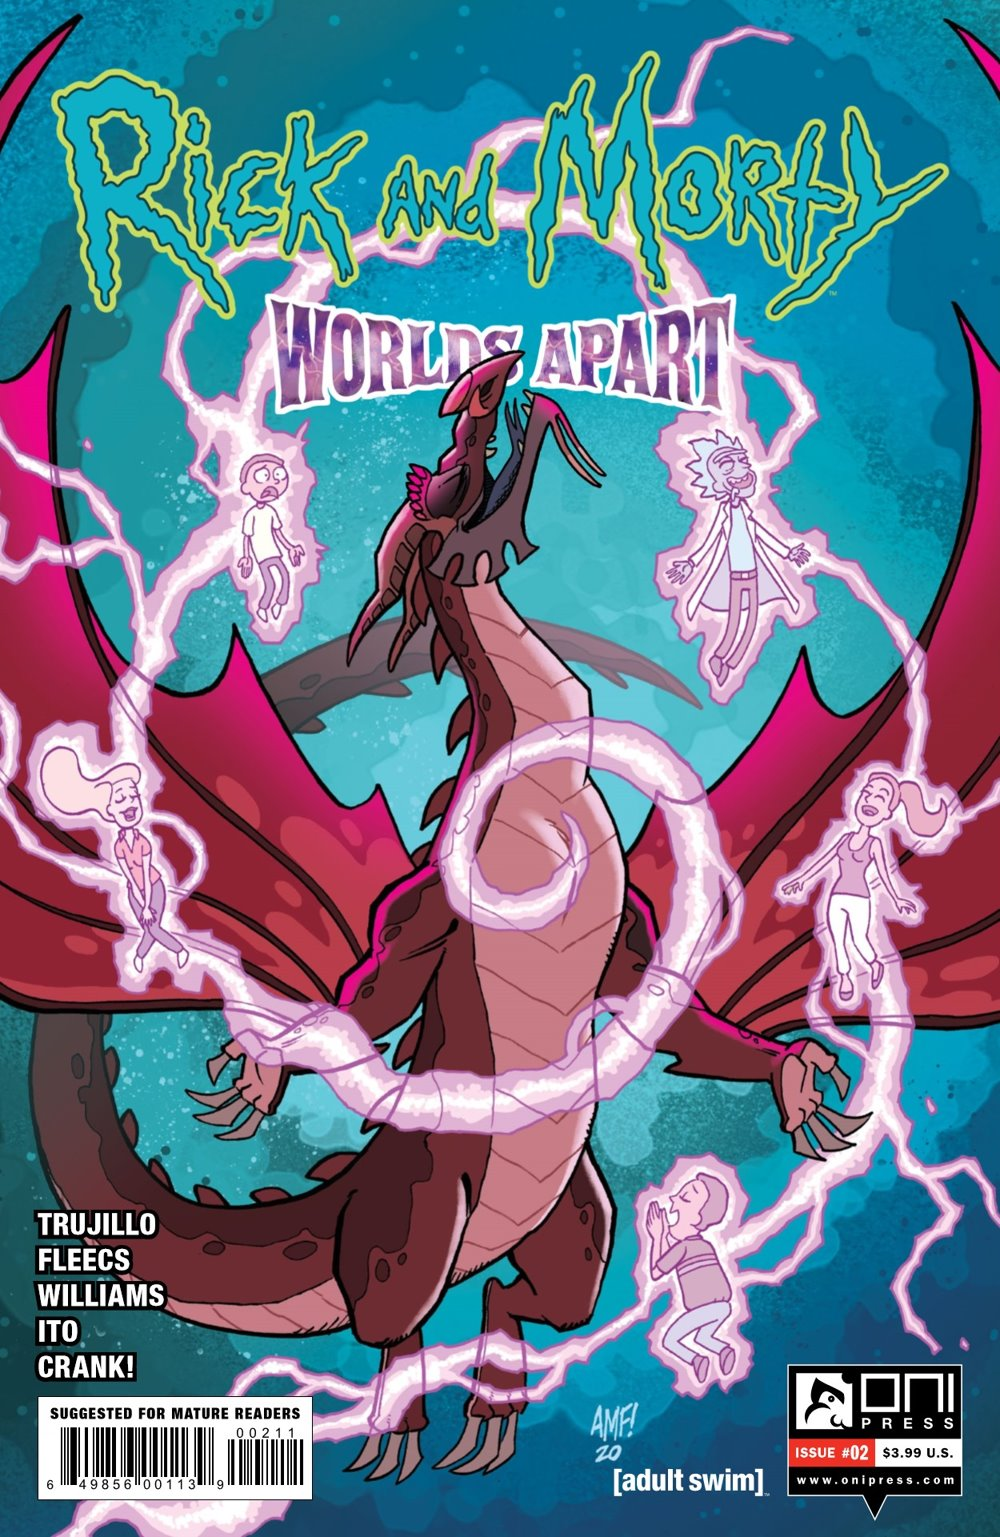 RICKMORTY-WORLDSAPART-2-REFERENCE-01 ComicList Previews: RICK AND MORTY WORLDS APART #2